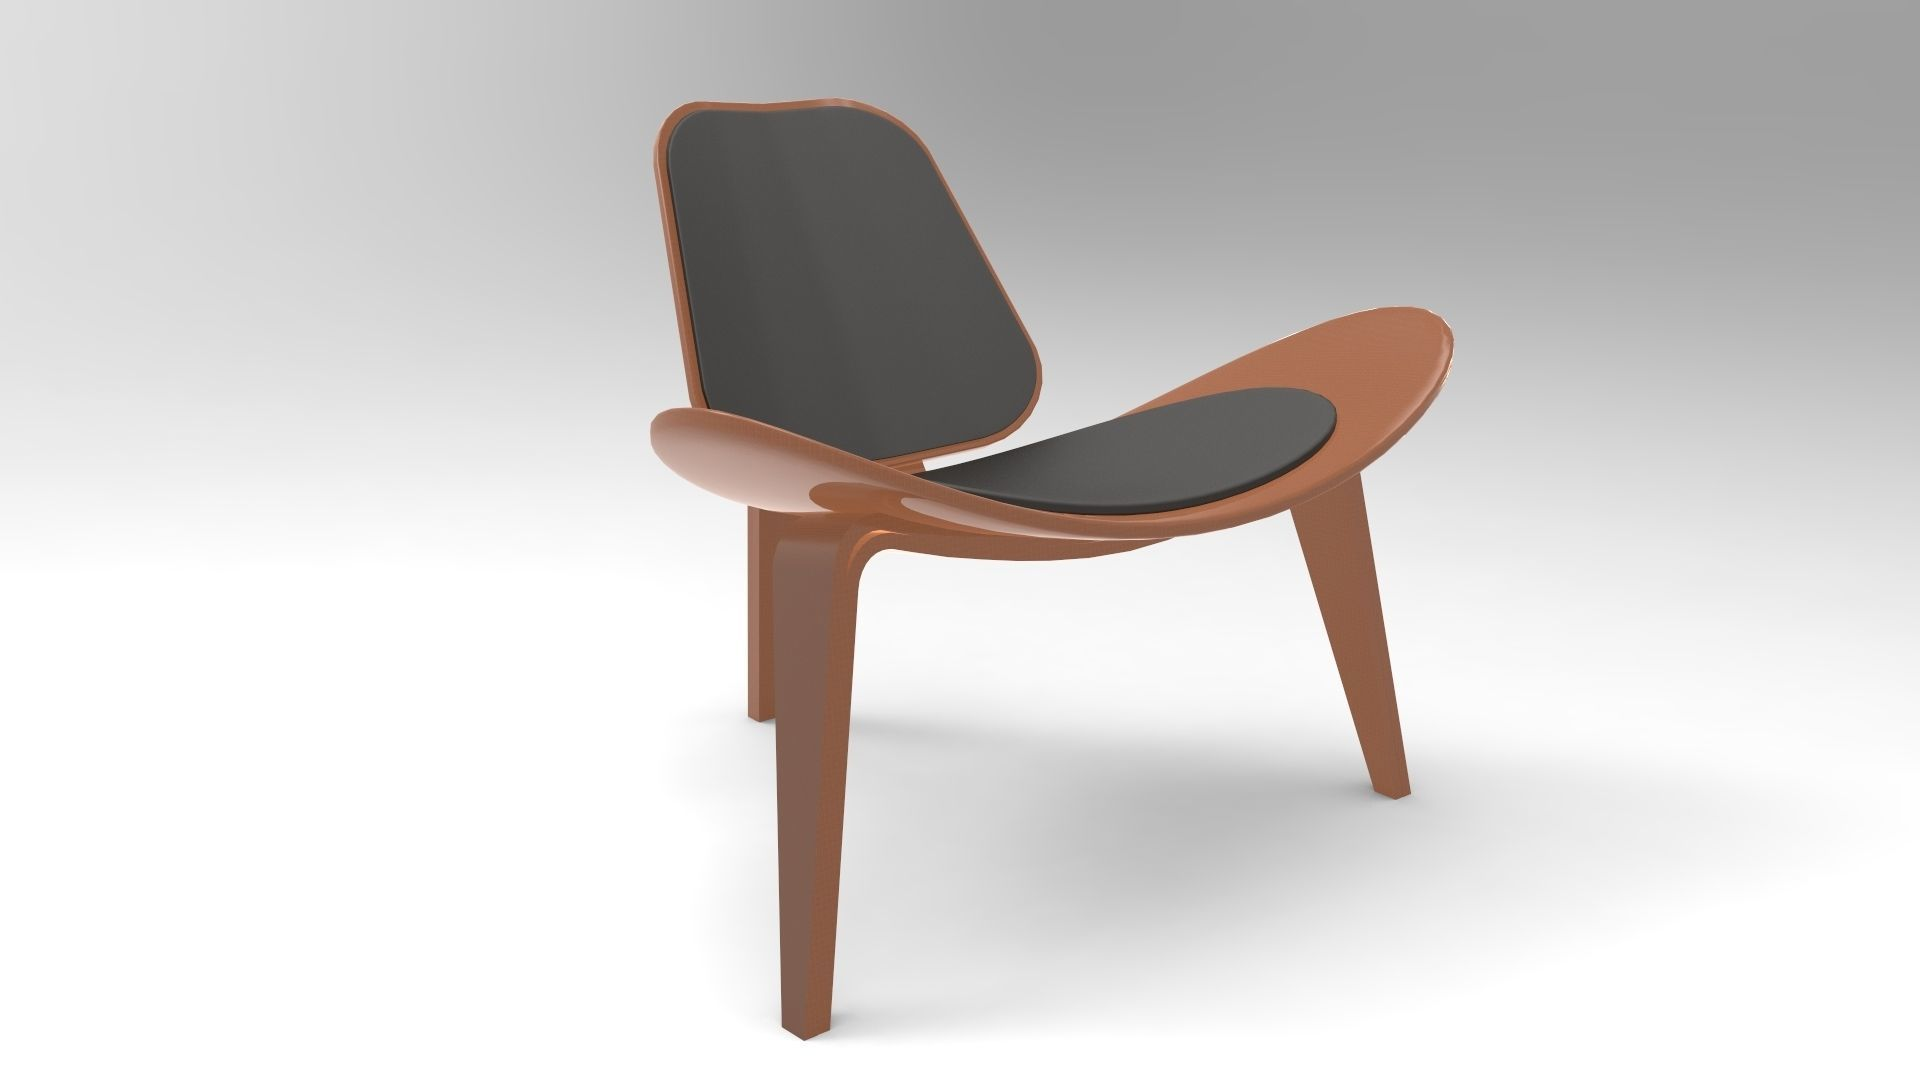 Scandinavian Chair Scandinavian Chair 3d Model 3d Model